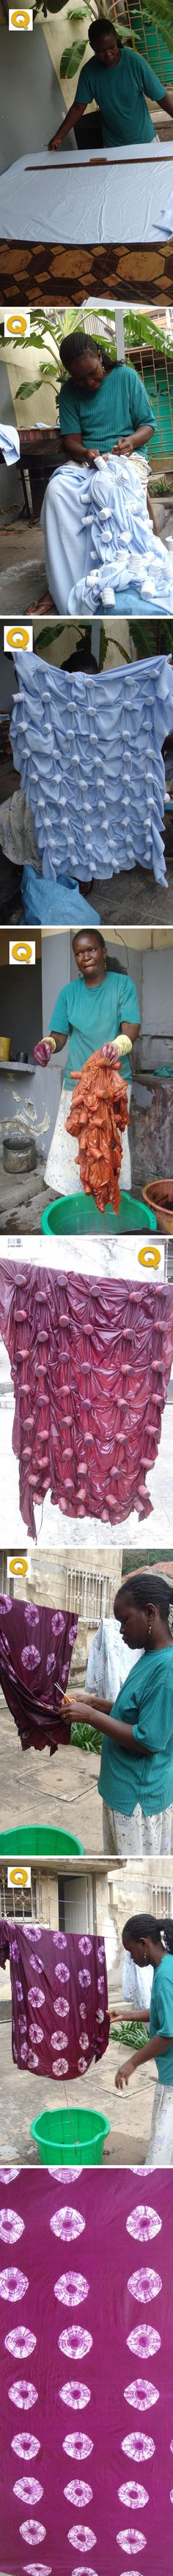 Mozambique Tie Dye - gotta try this on a small scale.